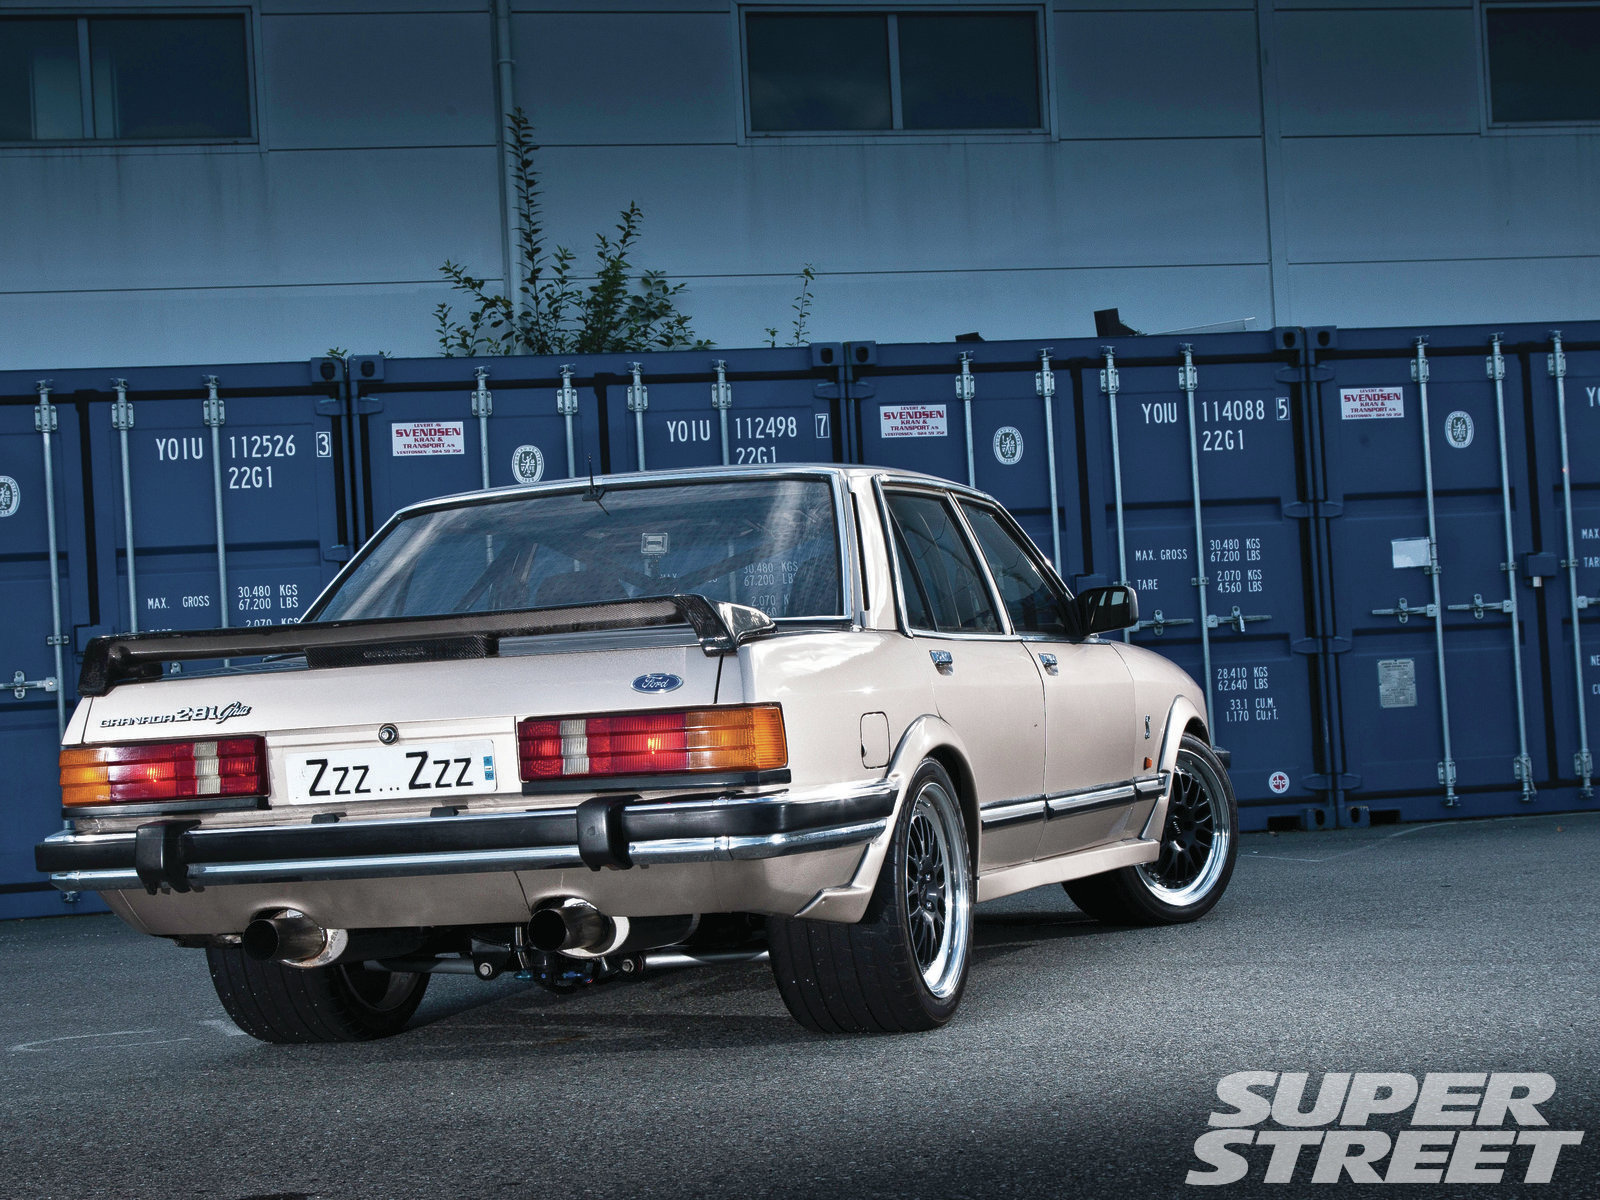 1982 ford granada Car Tuning